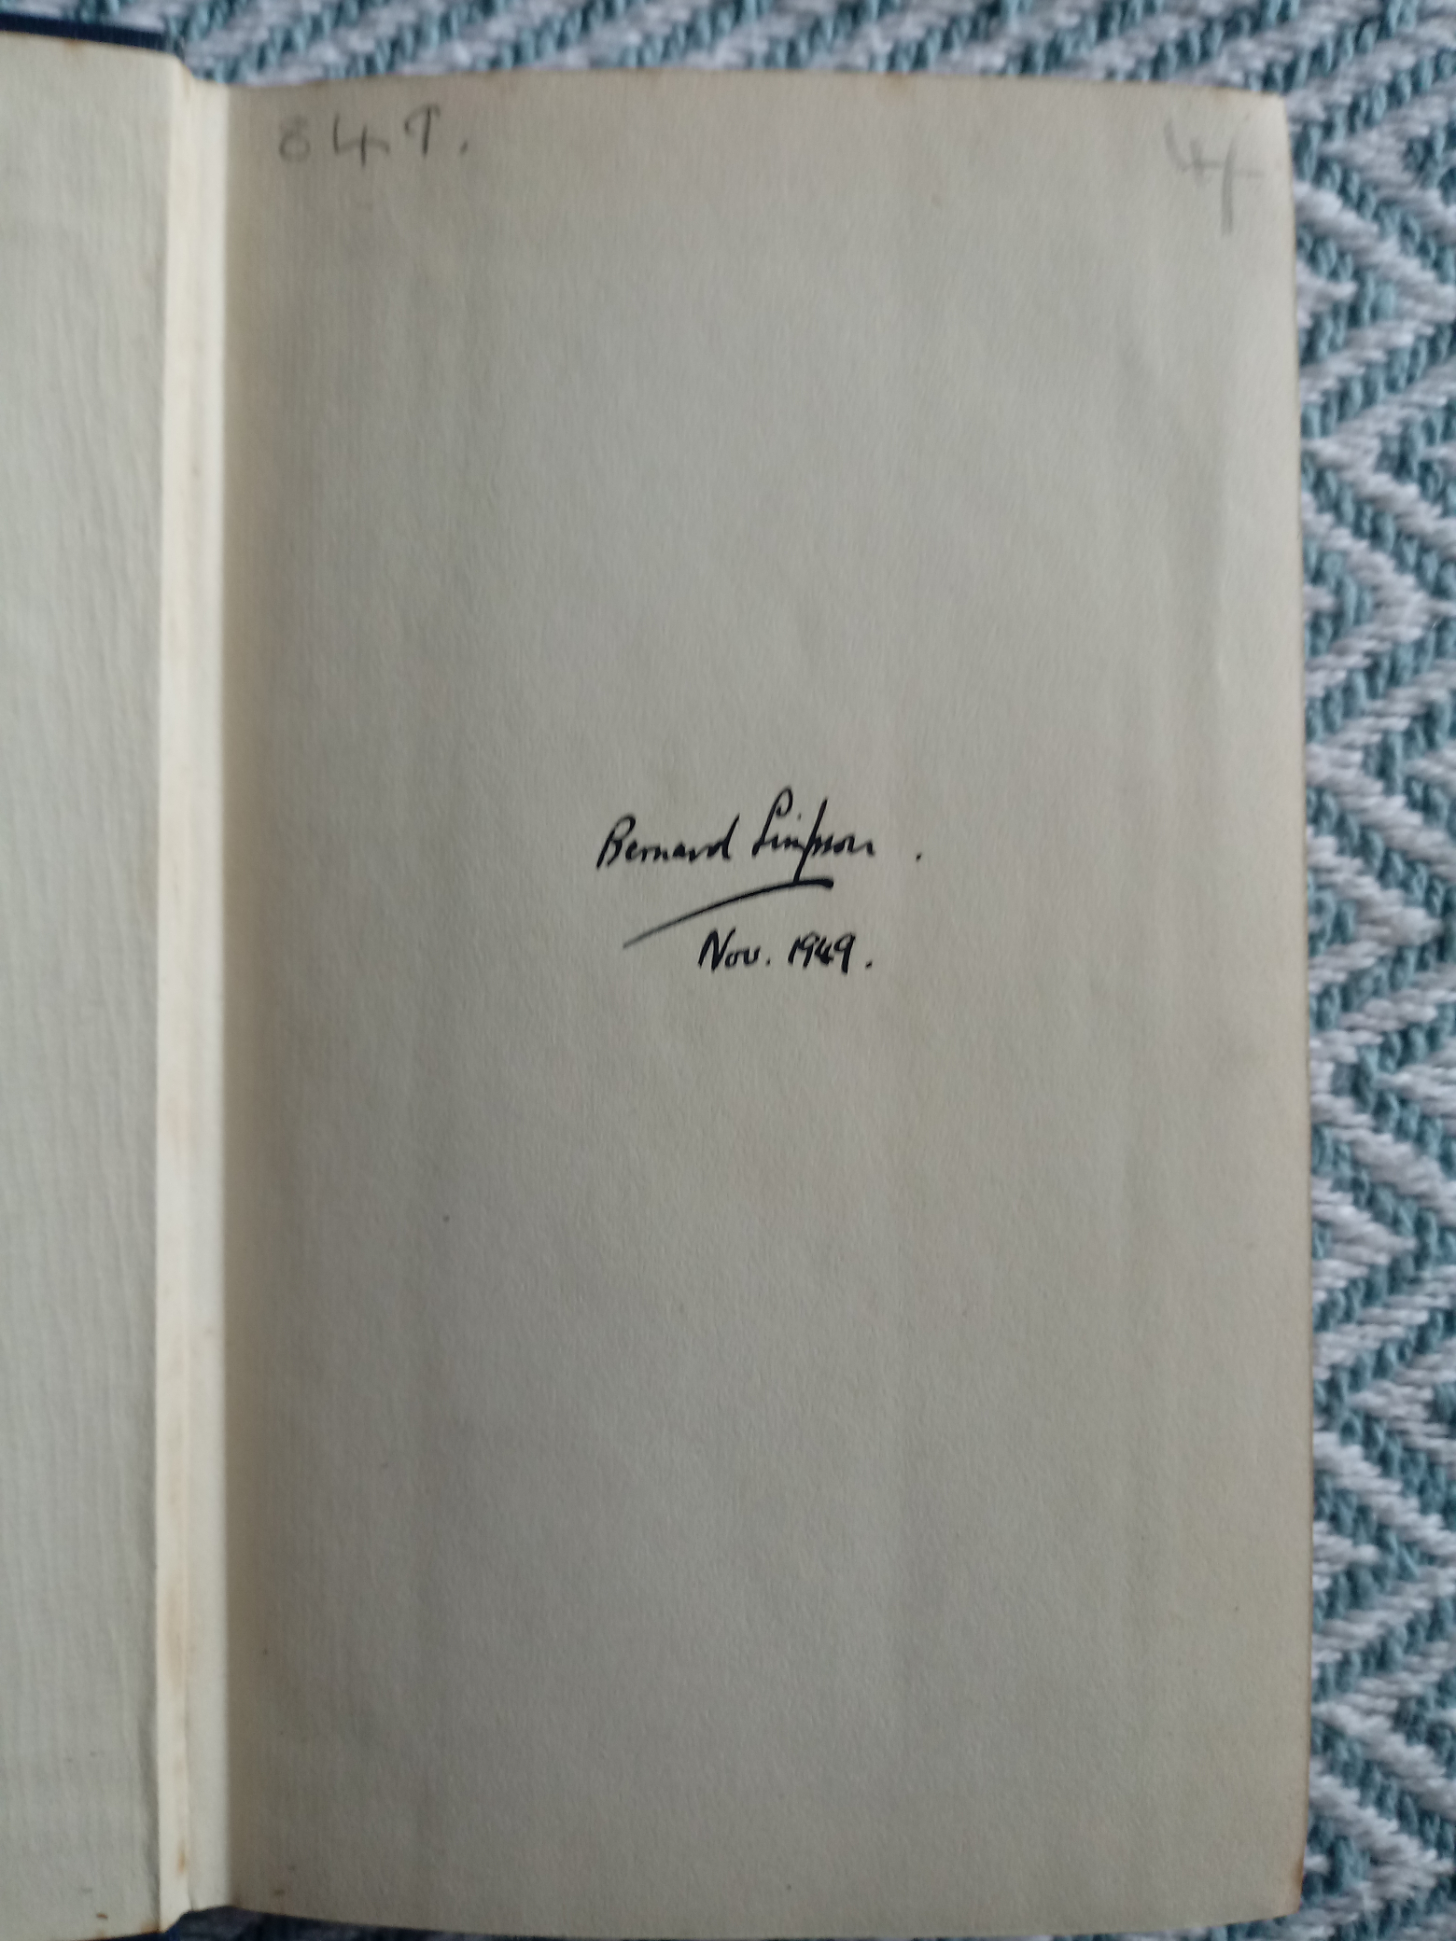 The Life And Opinions Of Tristram Shandy Gentleman by Laurence Sterne hardback book 593 pages signed - Image 3 of 4